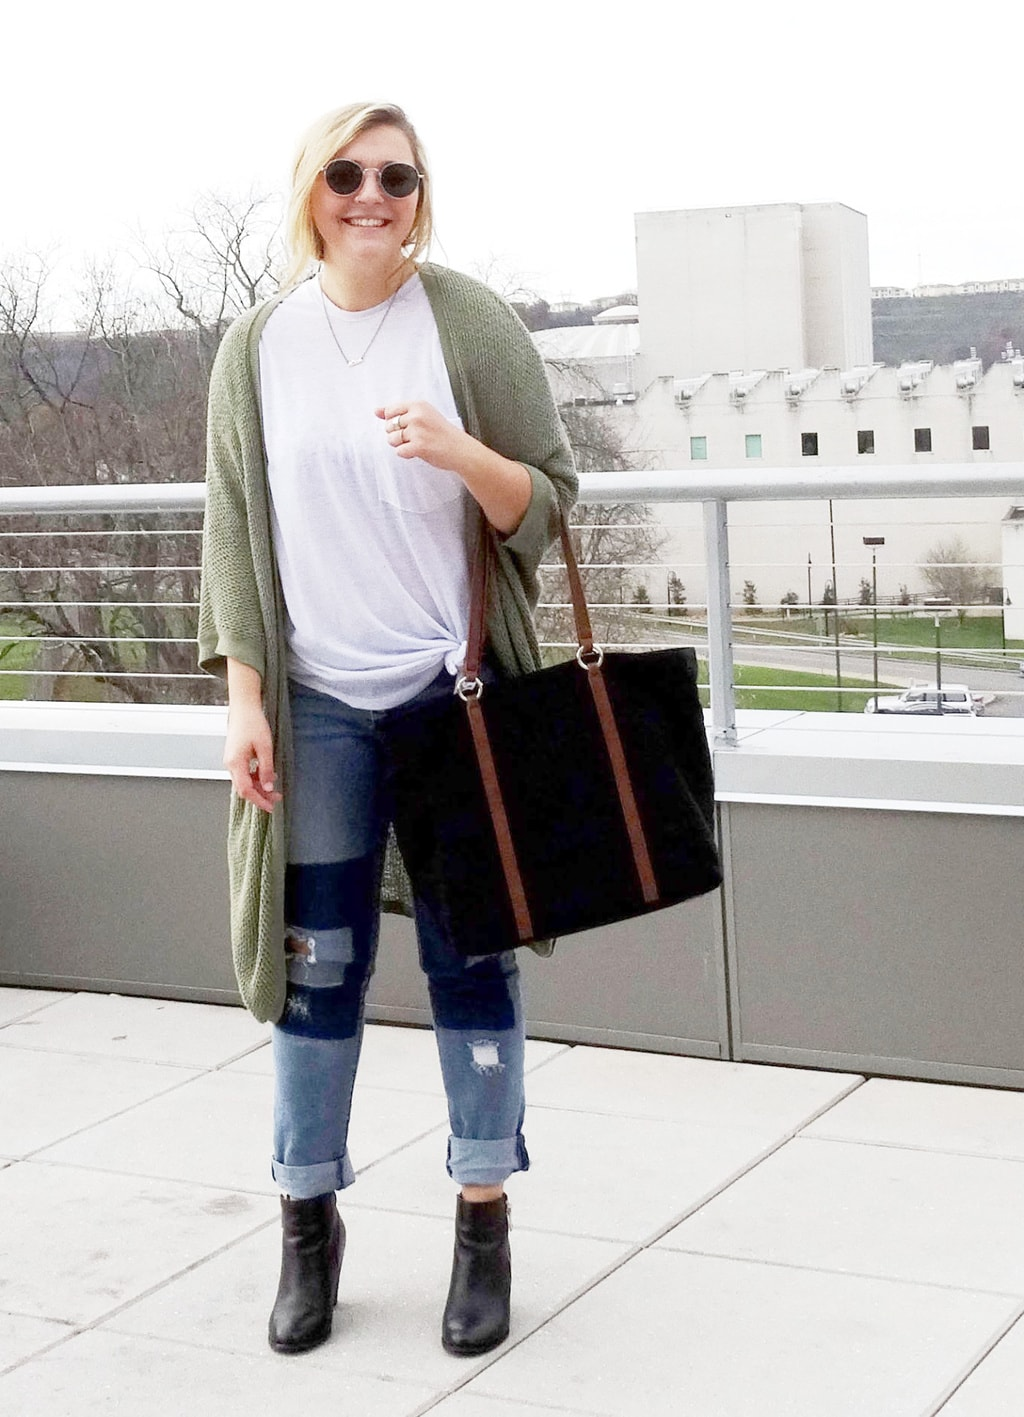 WVU college student Mel shows off her campus street style, wearing the perfect patchwork jeans outfit. Includes a white tee, boyfriend jeans, and an olive cardigan with heeled ankle booties